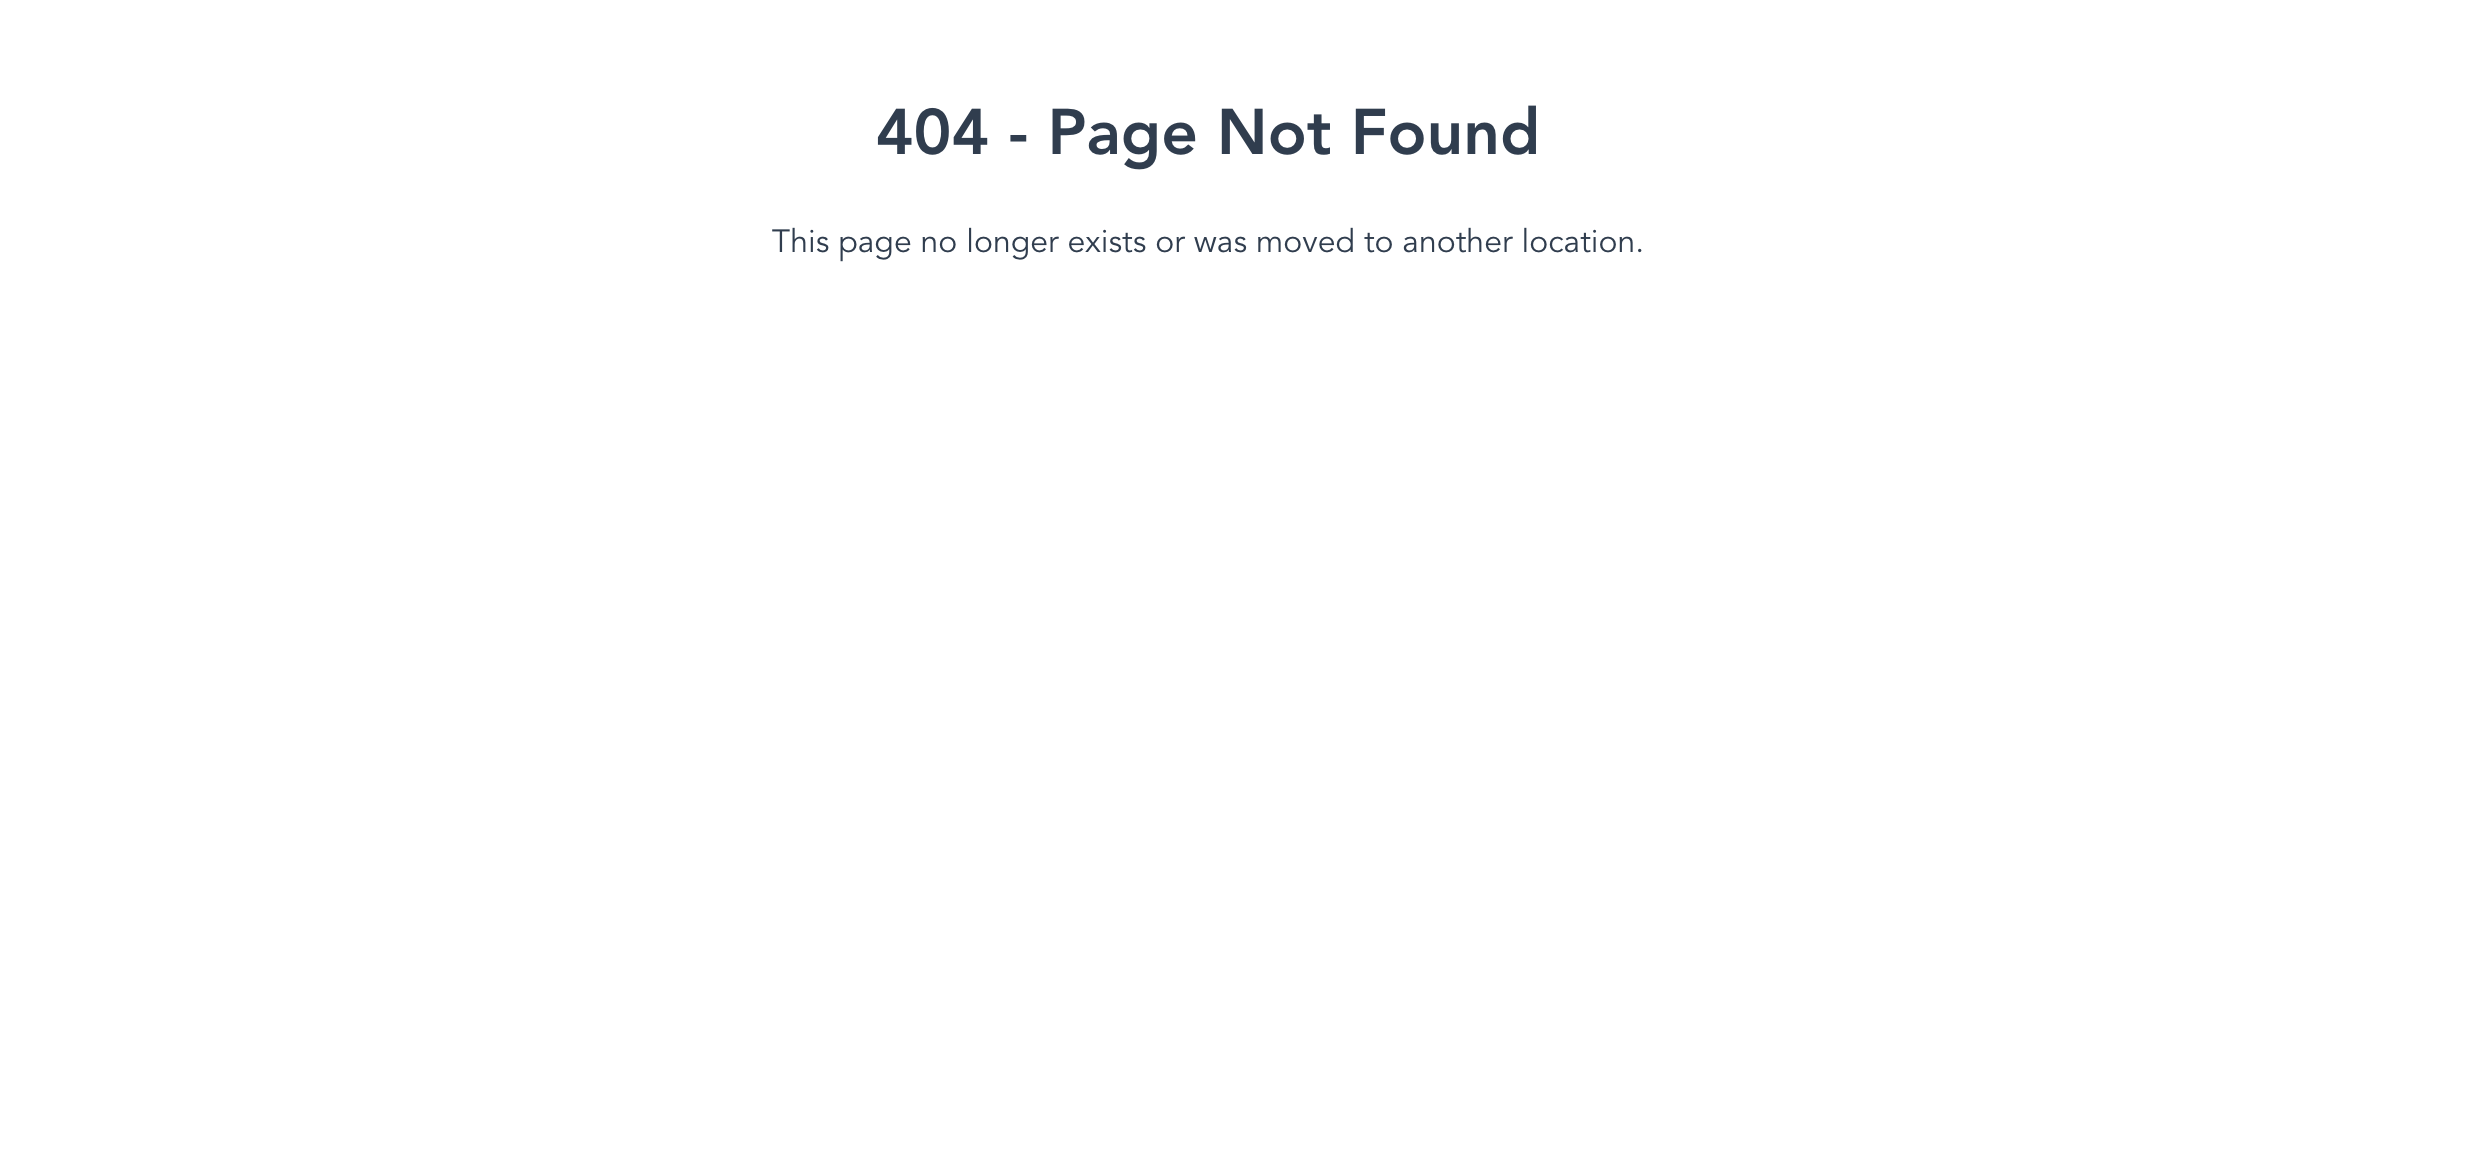 A 404 page that tells the user that the page they are looking for has not been found.